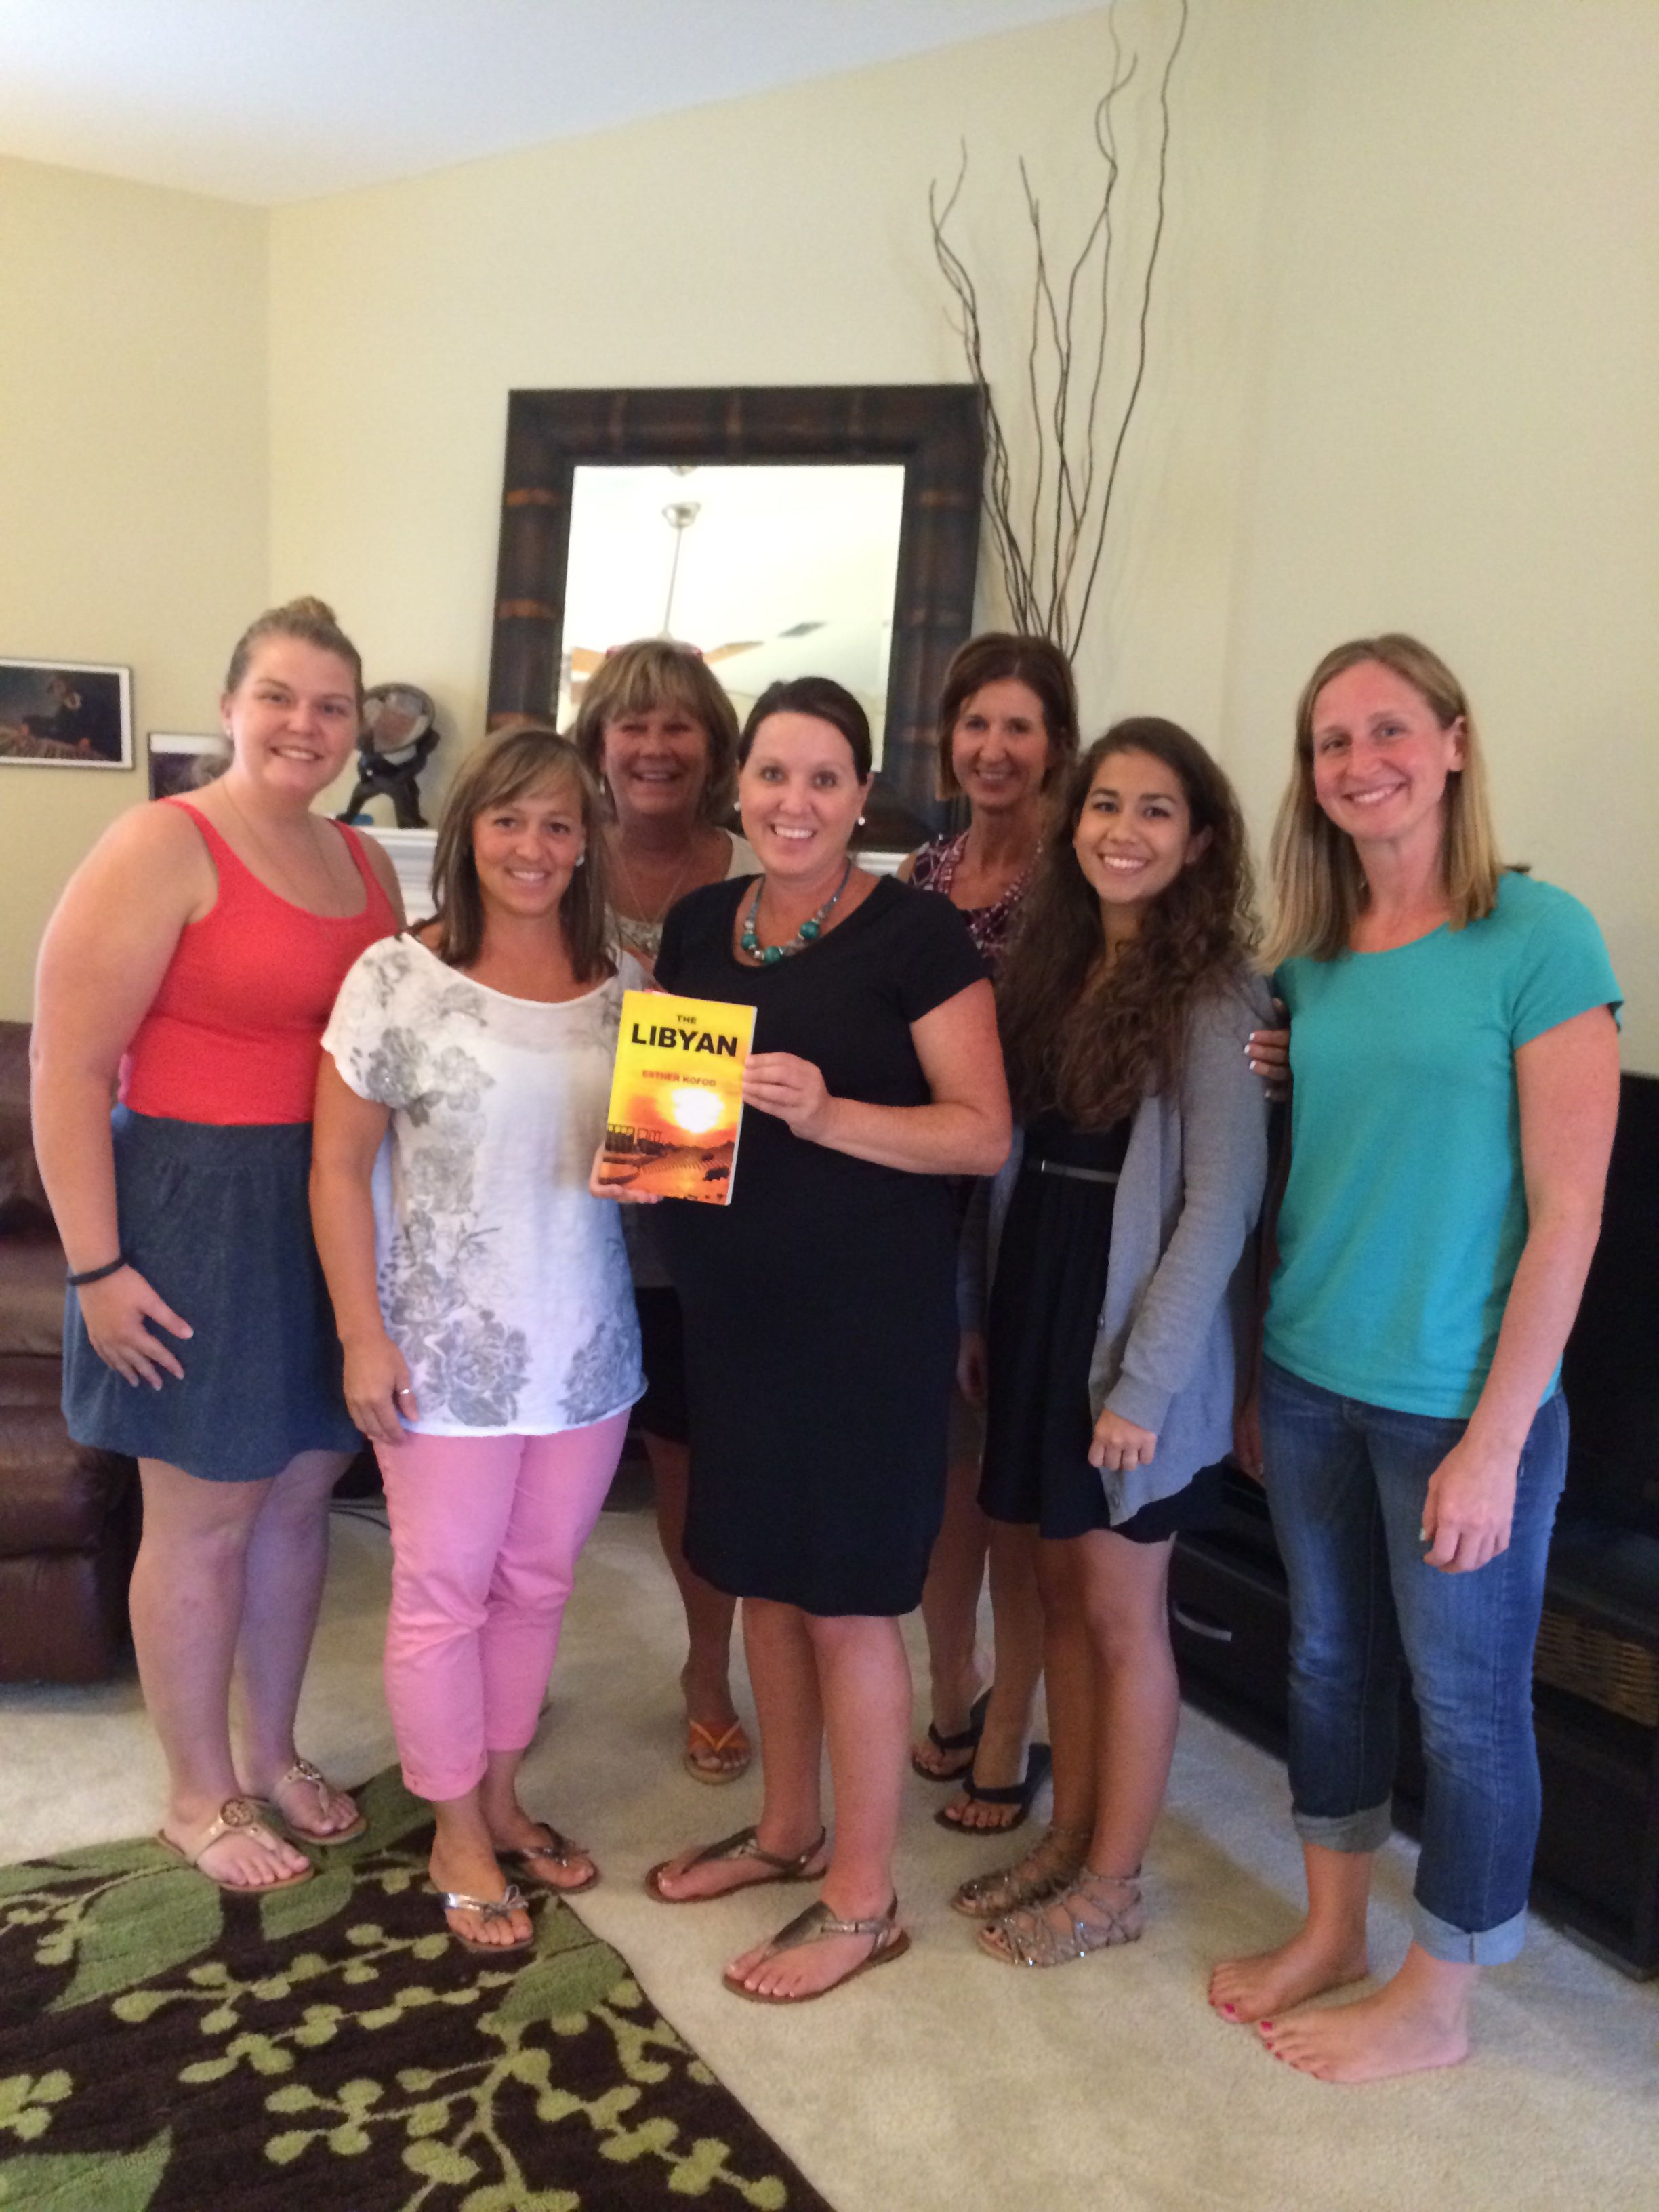 The author was our guest this evening! This is a great book, available from Amazon! Book Club 7/29/14   THE LIBYAN Esther Kofod www.estherkofod.com